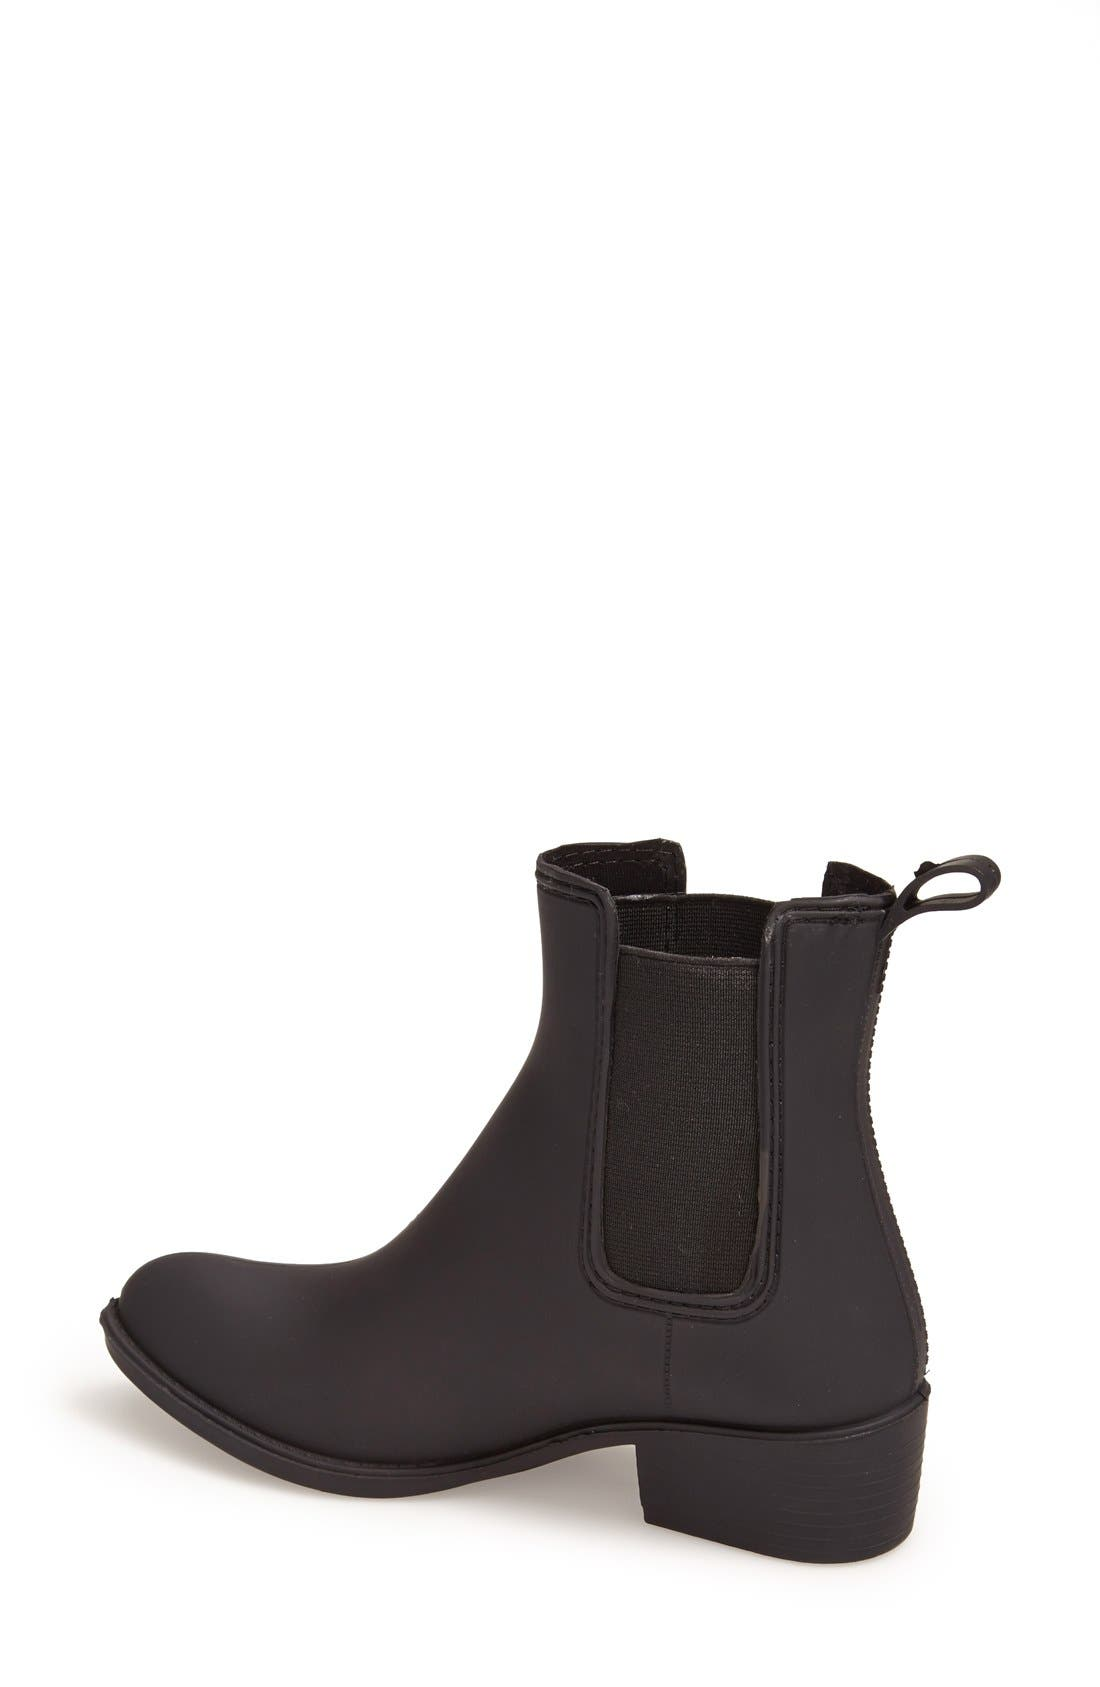 Alternate Image 2  - Jeffrey Campbell 'Stormy' Rain Boot (Women)